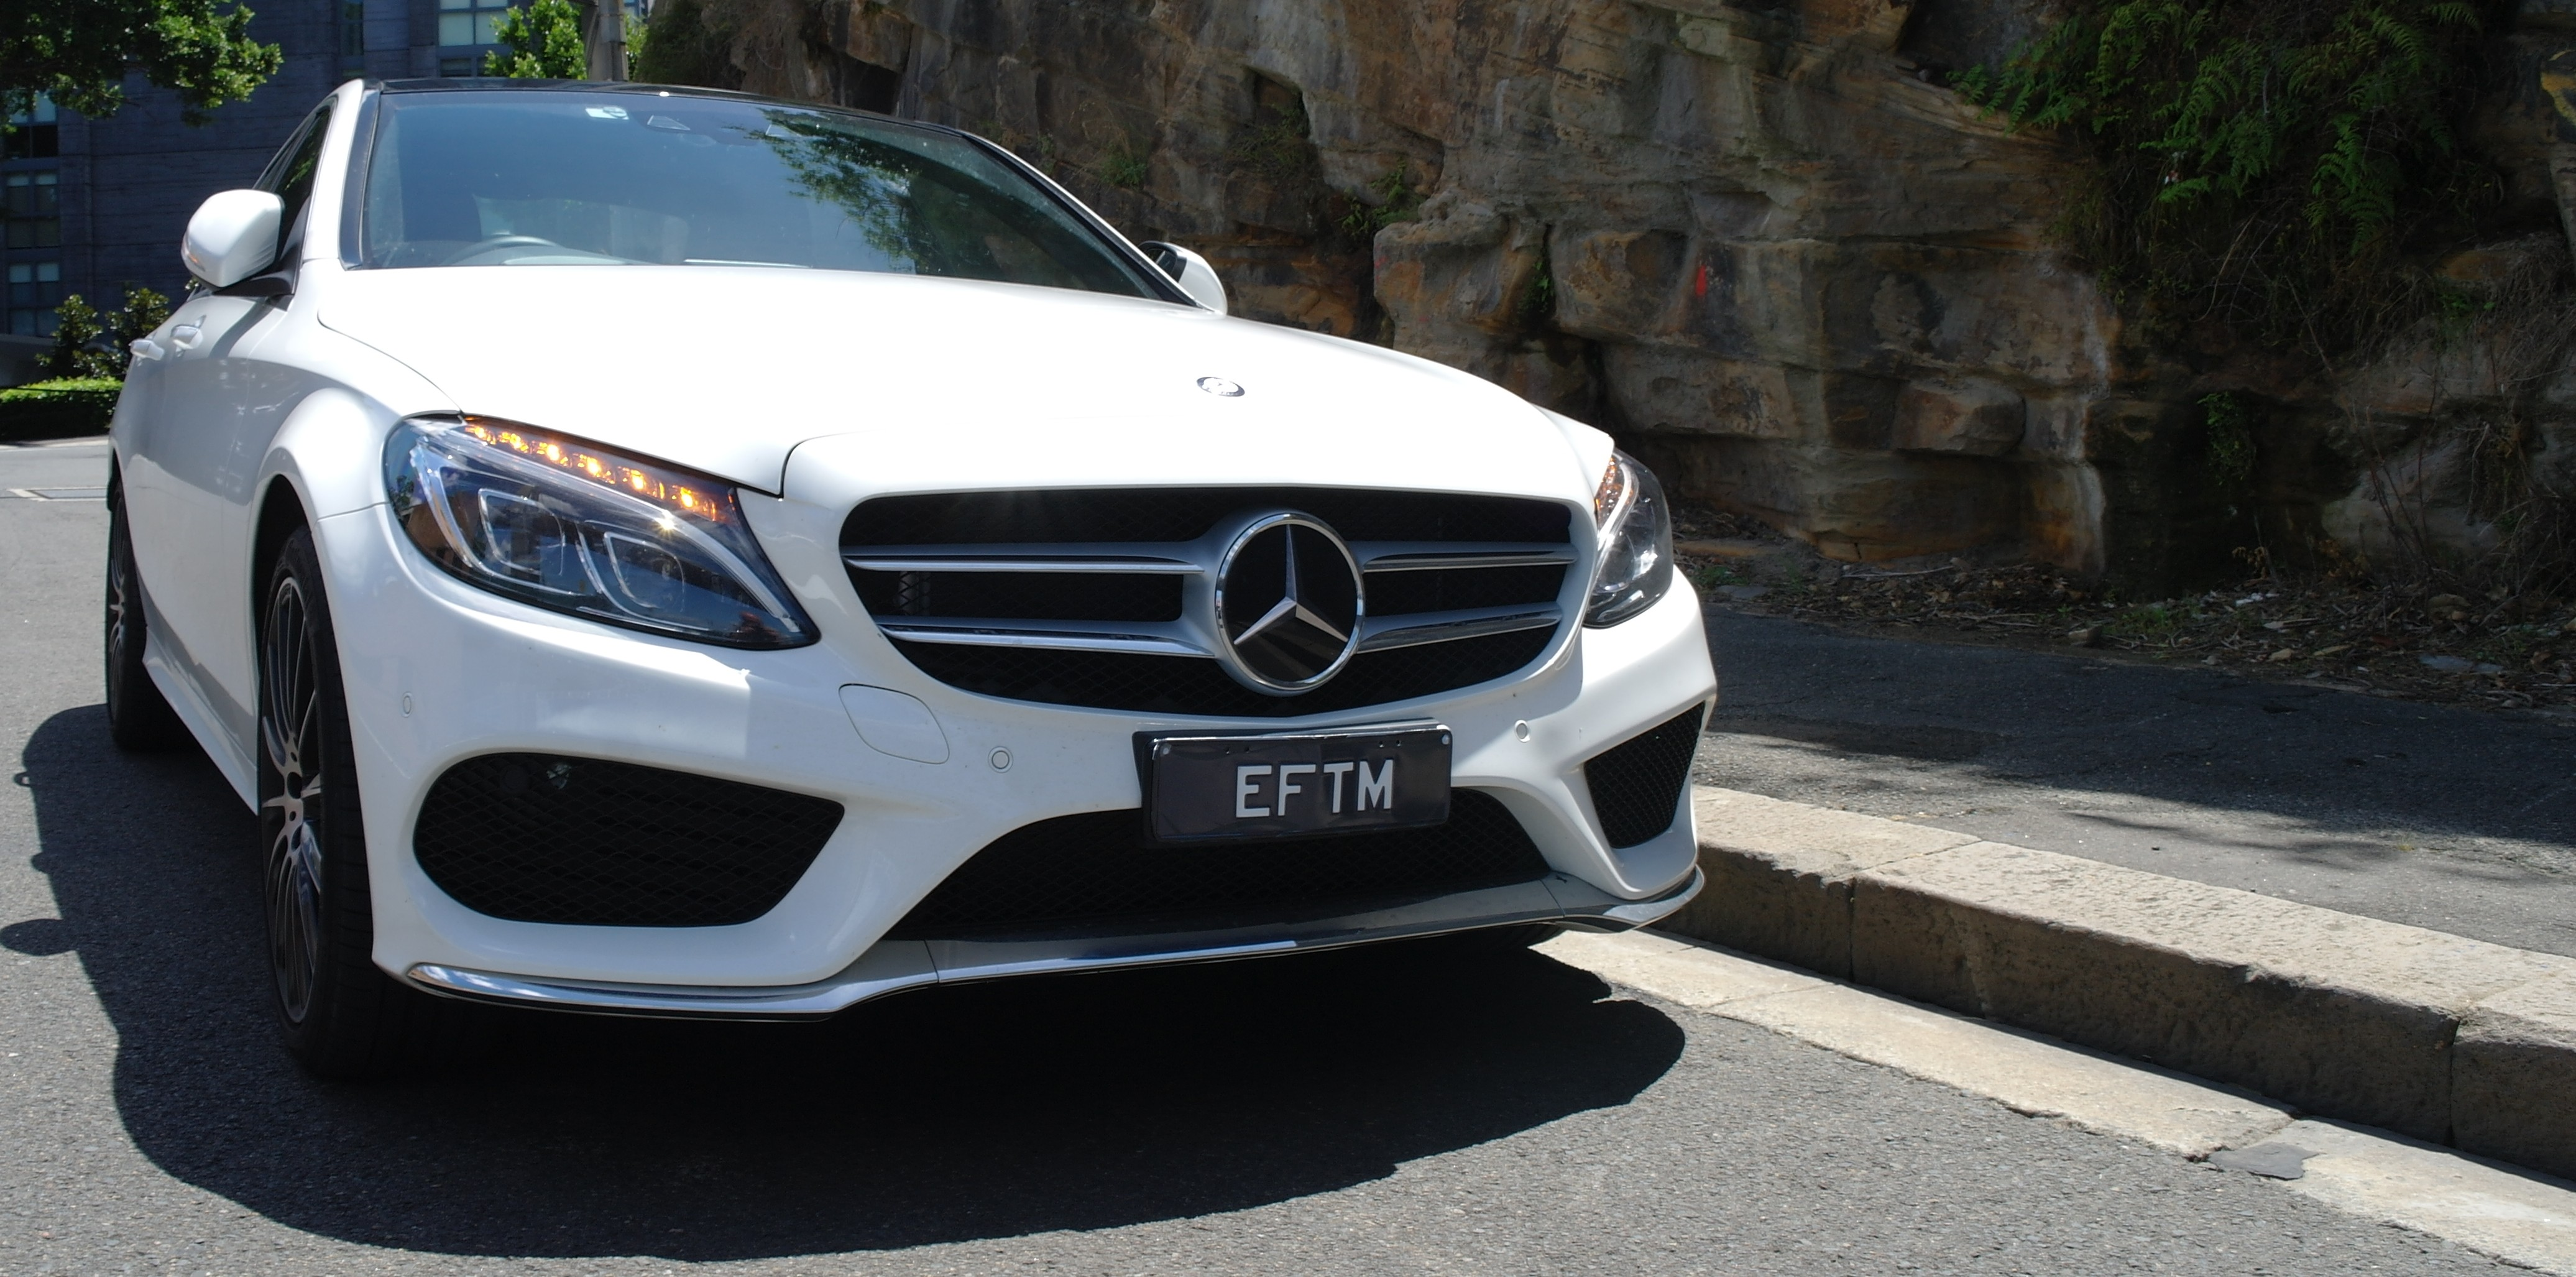 MERCEDES-BENZ C 250 - A real luxury car without spending through the stratosphere